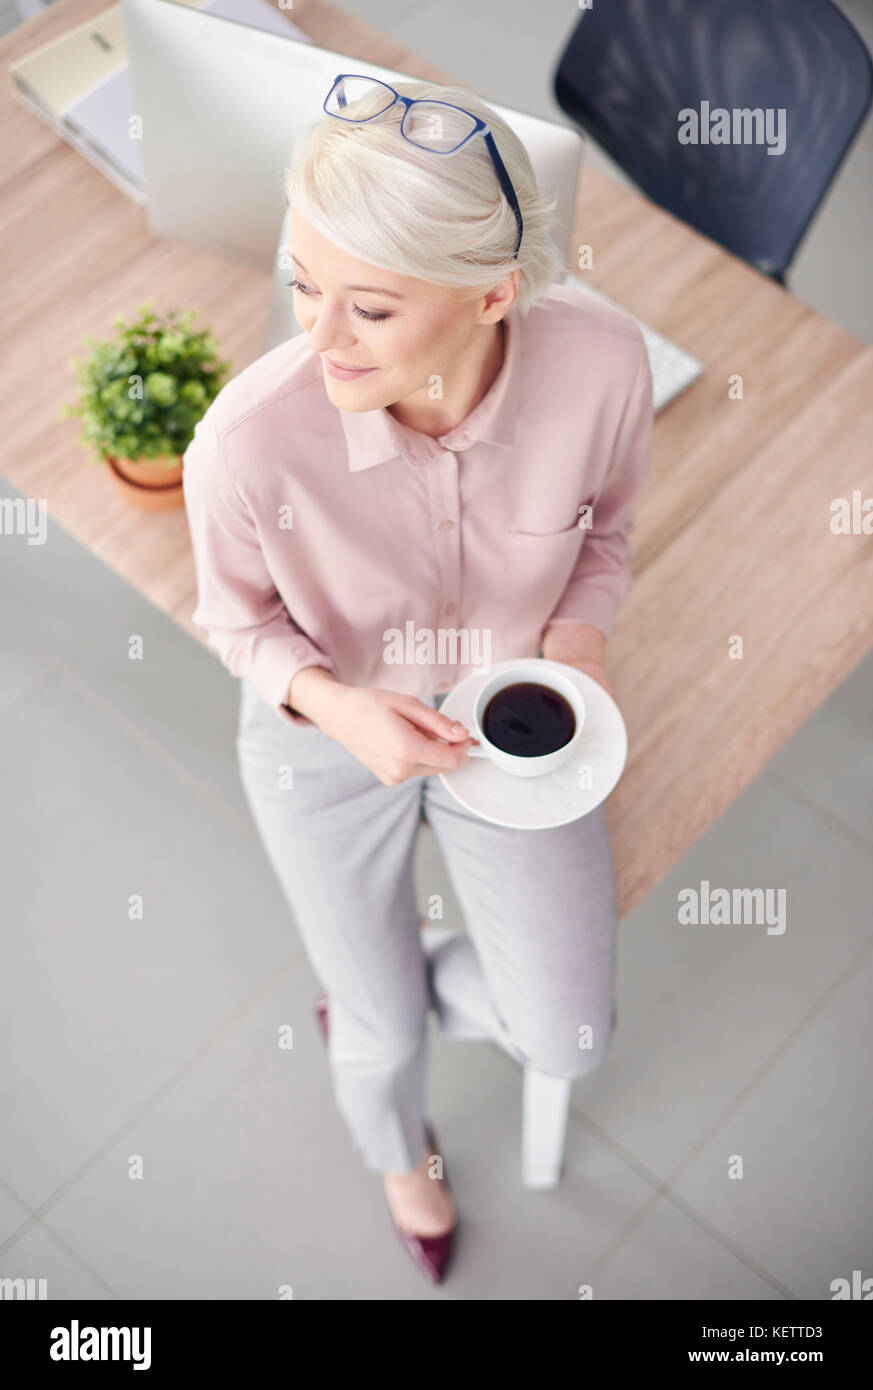 Smart business person with coffee sitting at desk - Stock Image